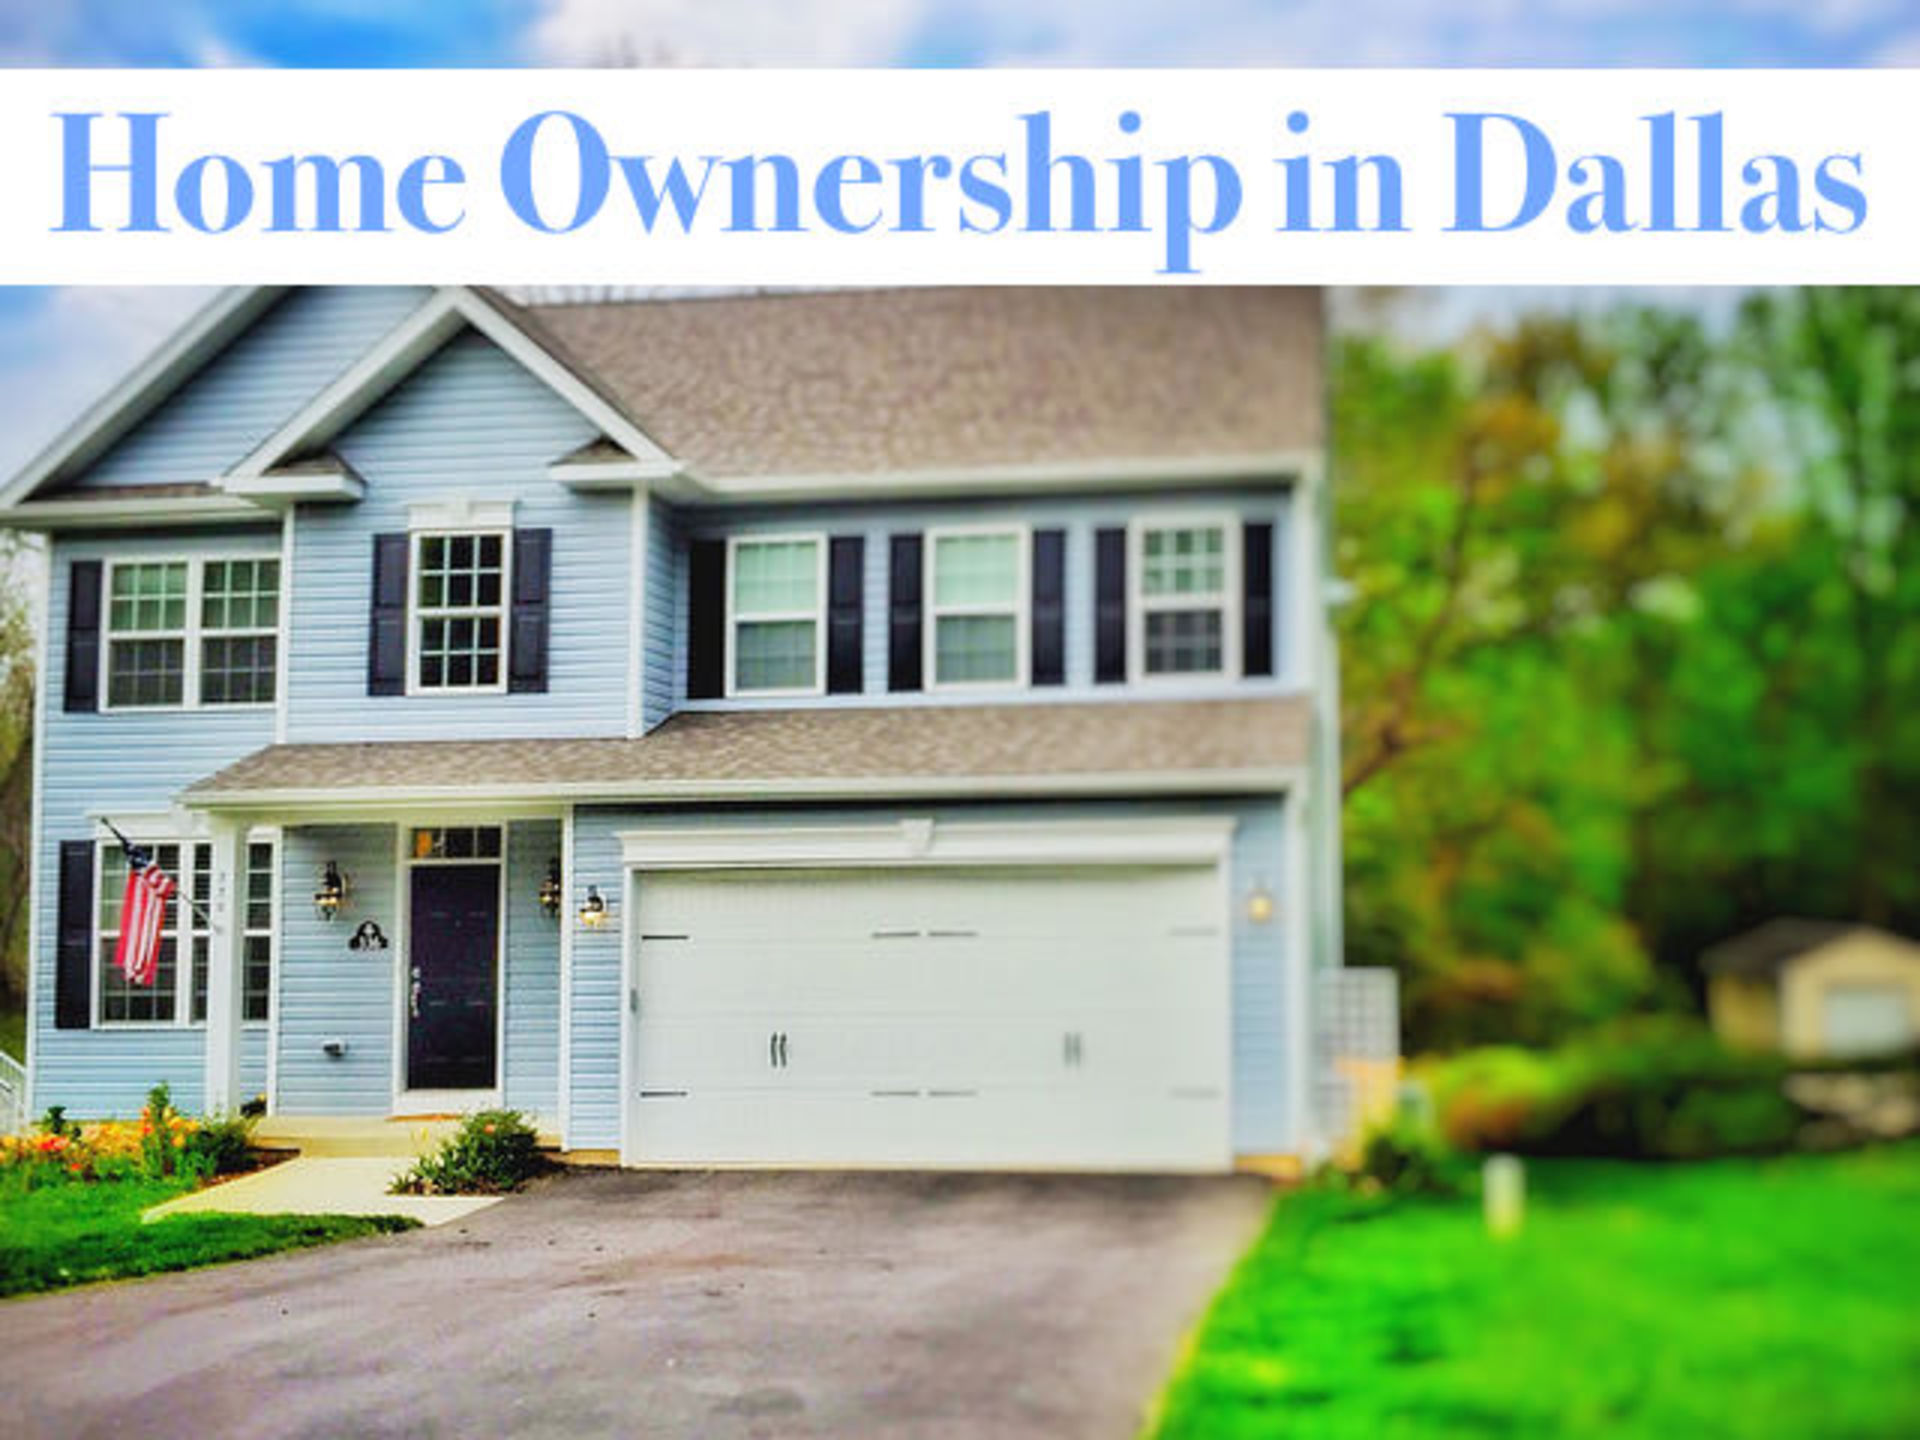 Homeownership in Dallas—and a Benefit for Children